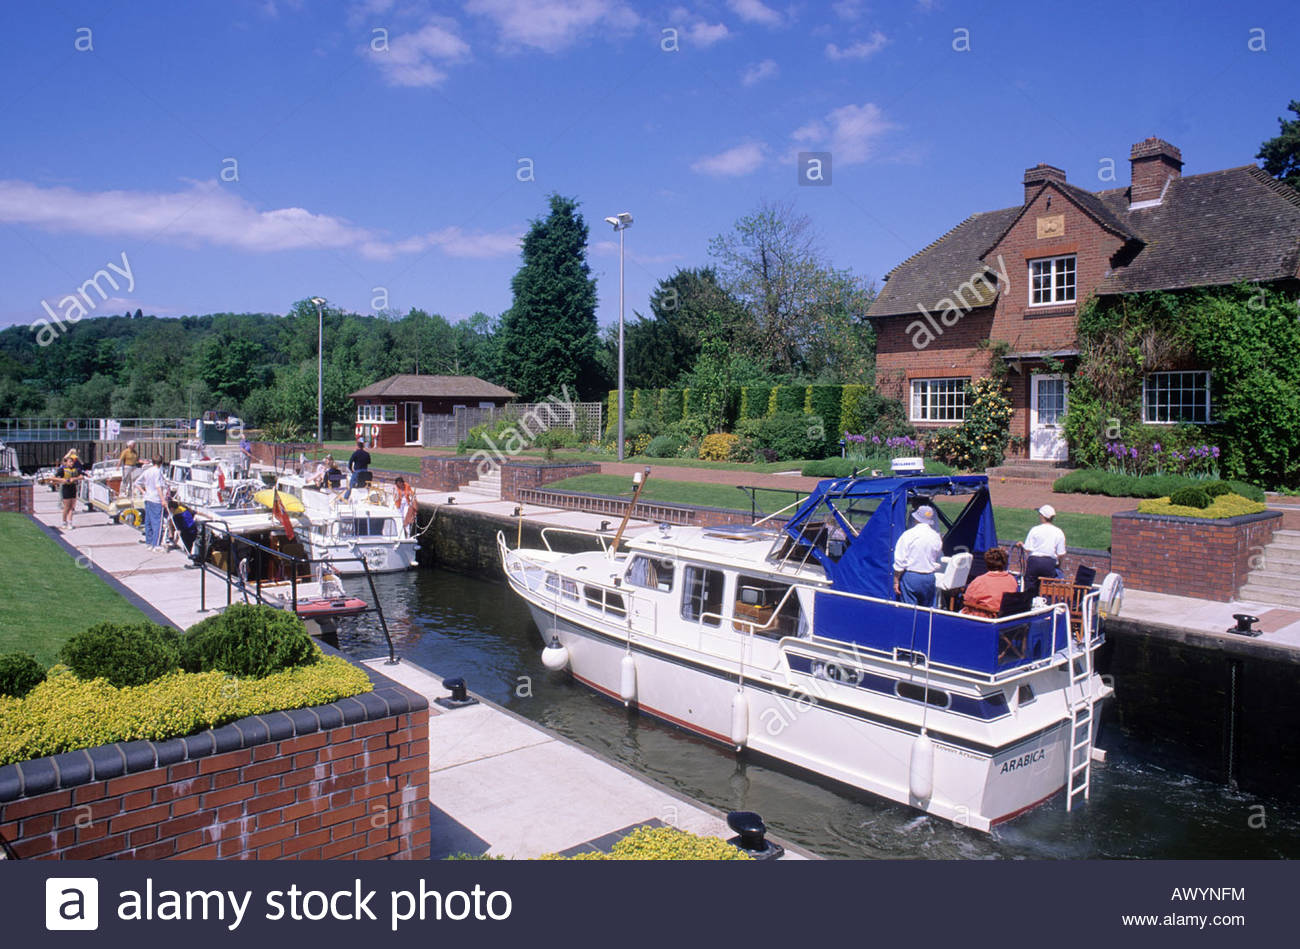 Oxford River Cruises The Thames Valley, Boats River Thames Lock Stock Photos & Boats River Thames Lock ...